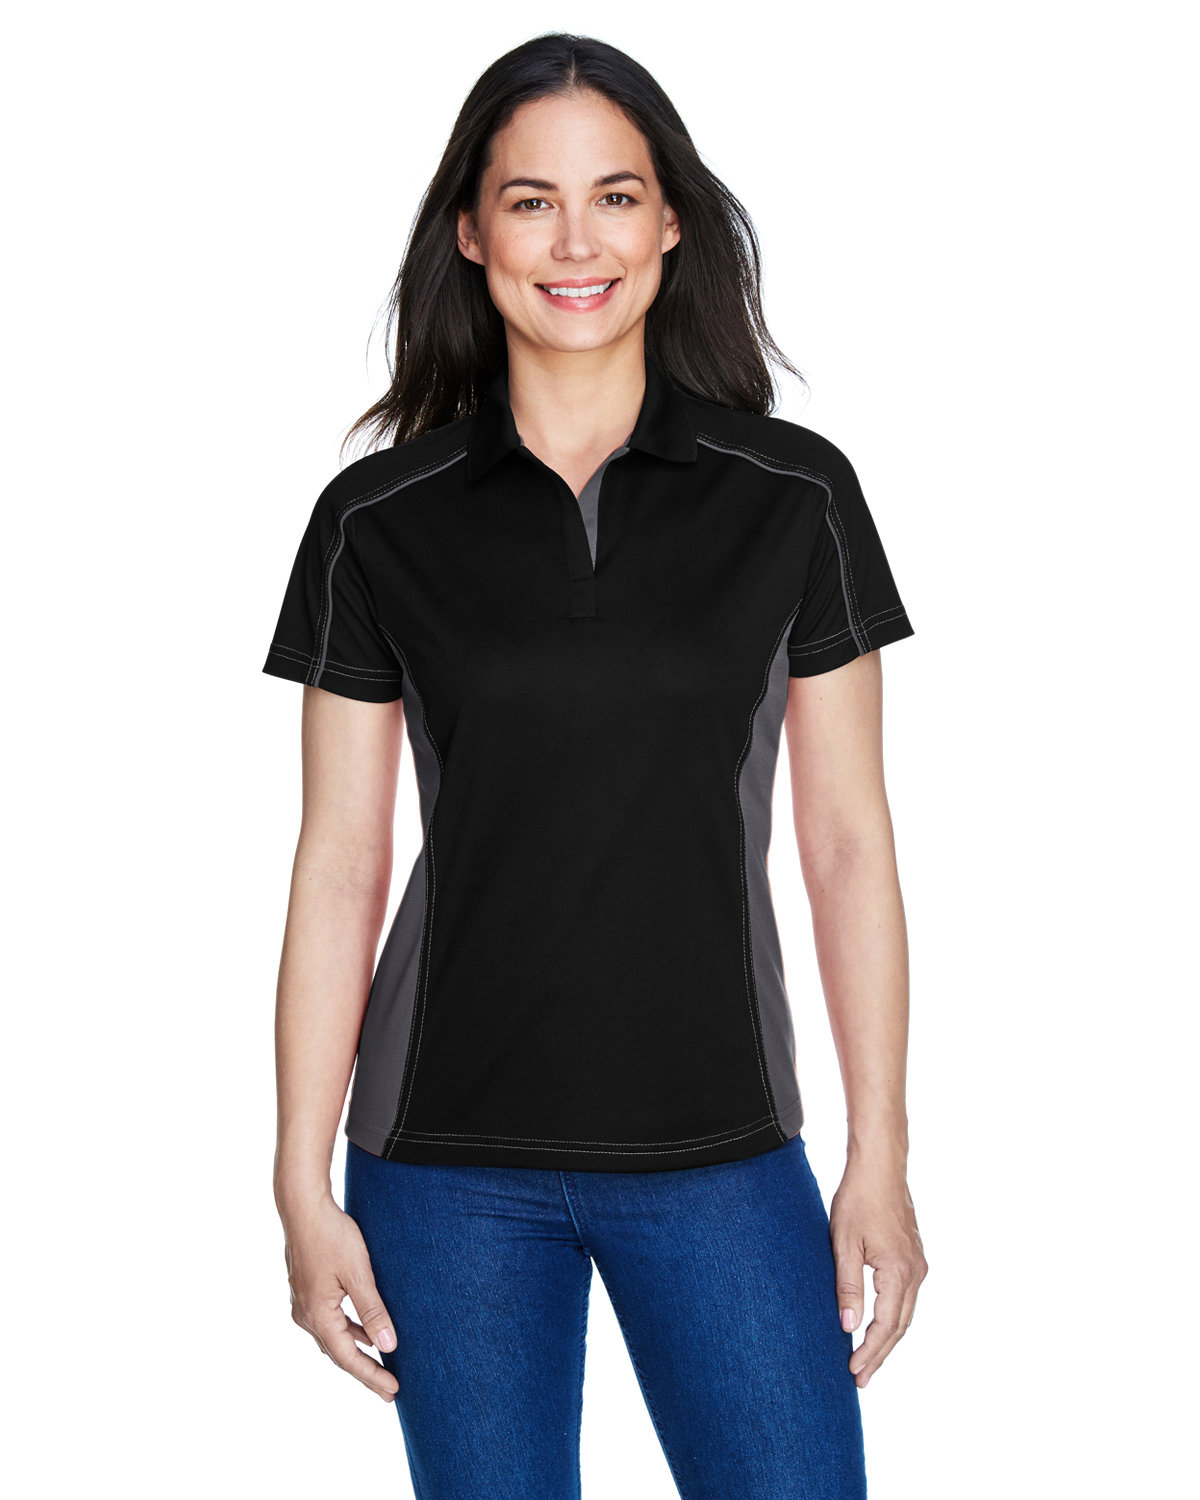 Extreme Ladies' Eperformance™ Fuse Snag Protection Plus Colorblock Polo BLACK/ CARBON